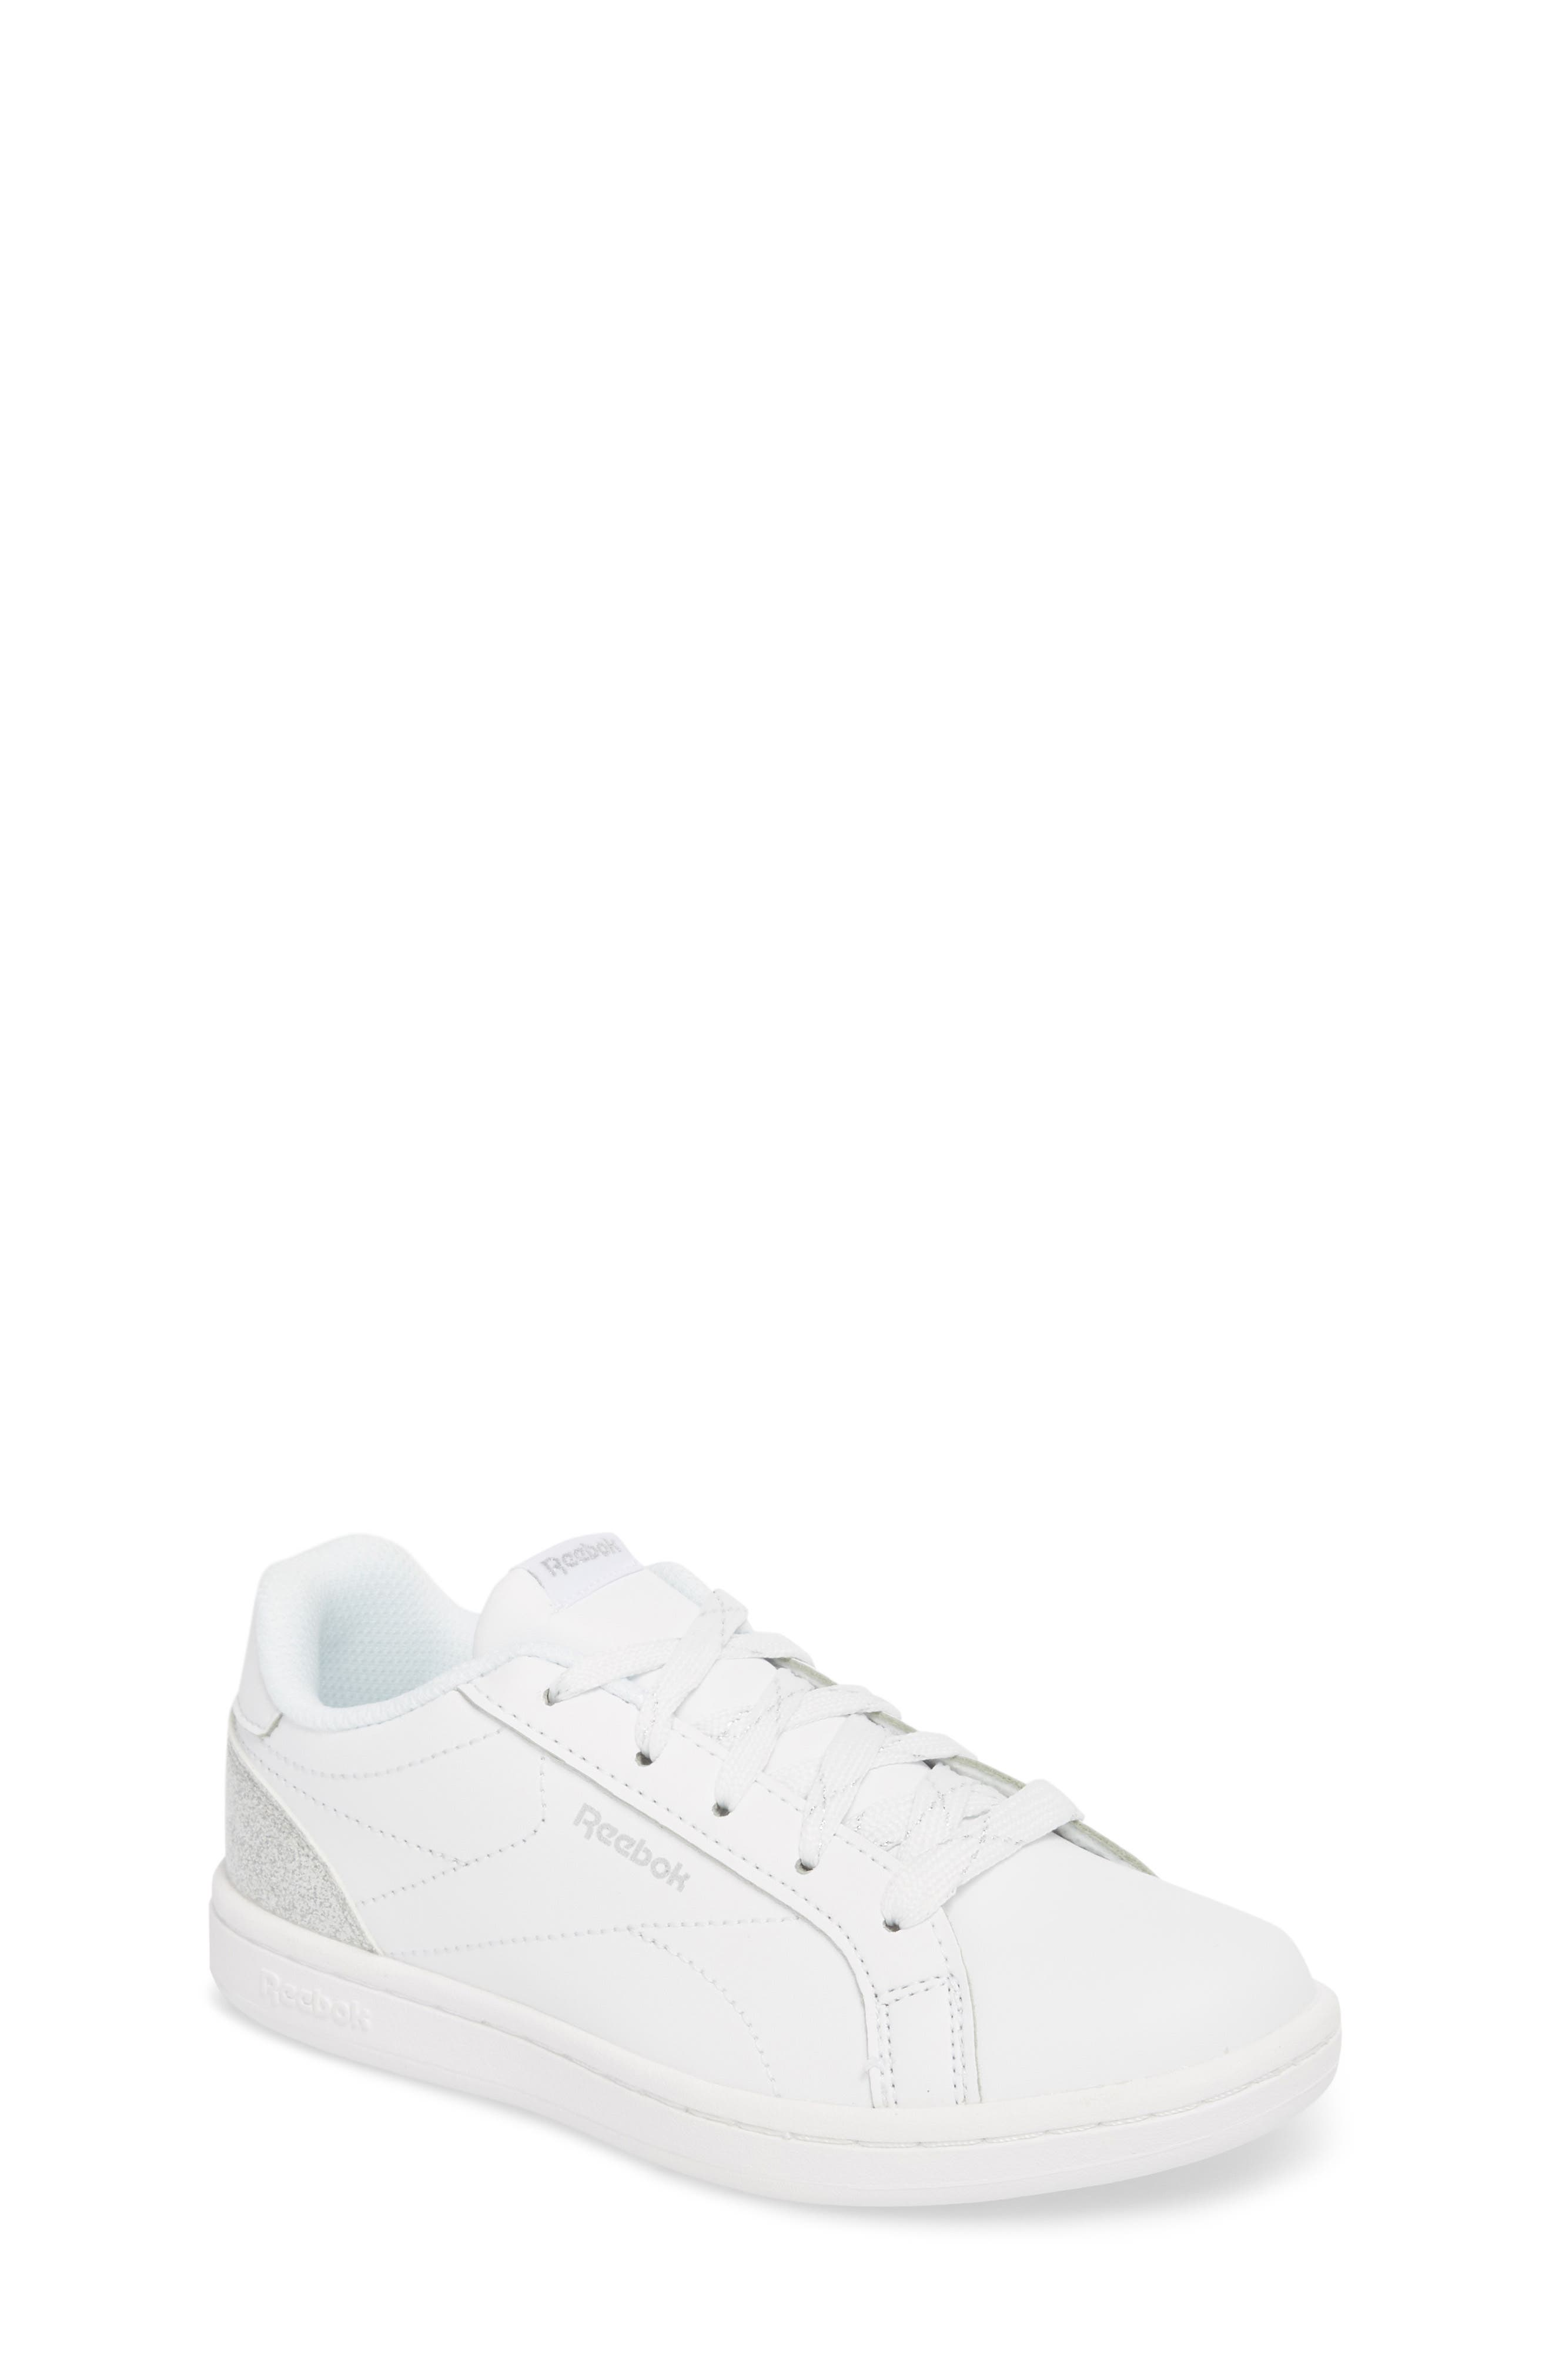 Royal Complete CLN Sneaker,                         Main,                         color, 100